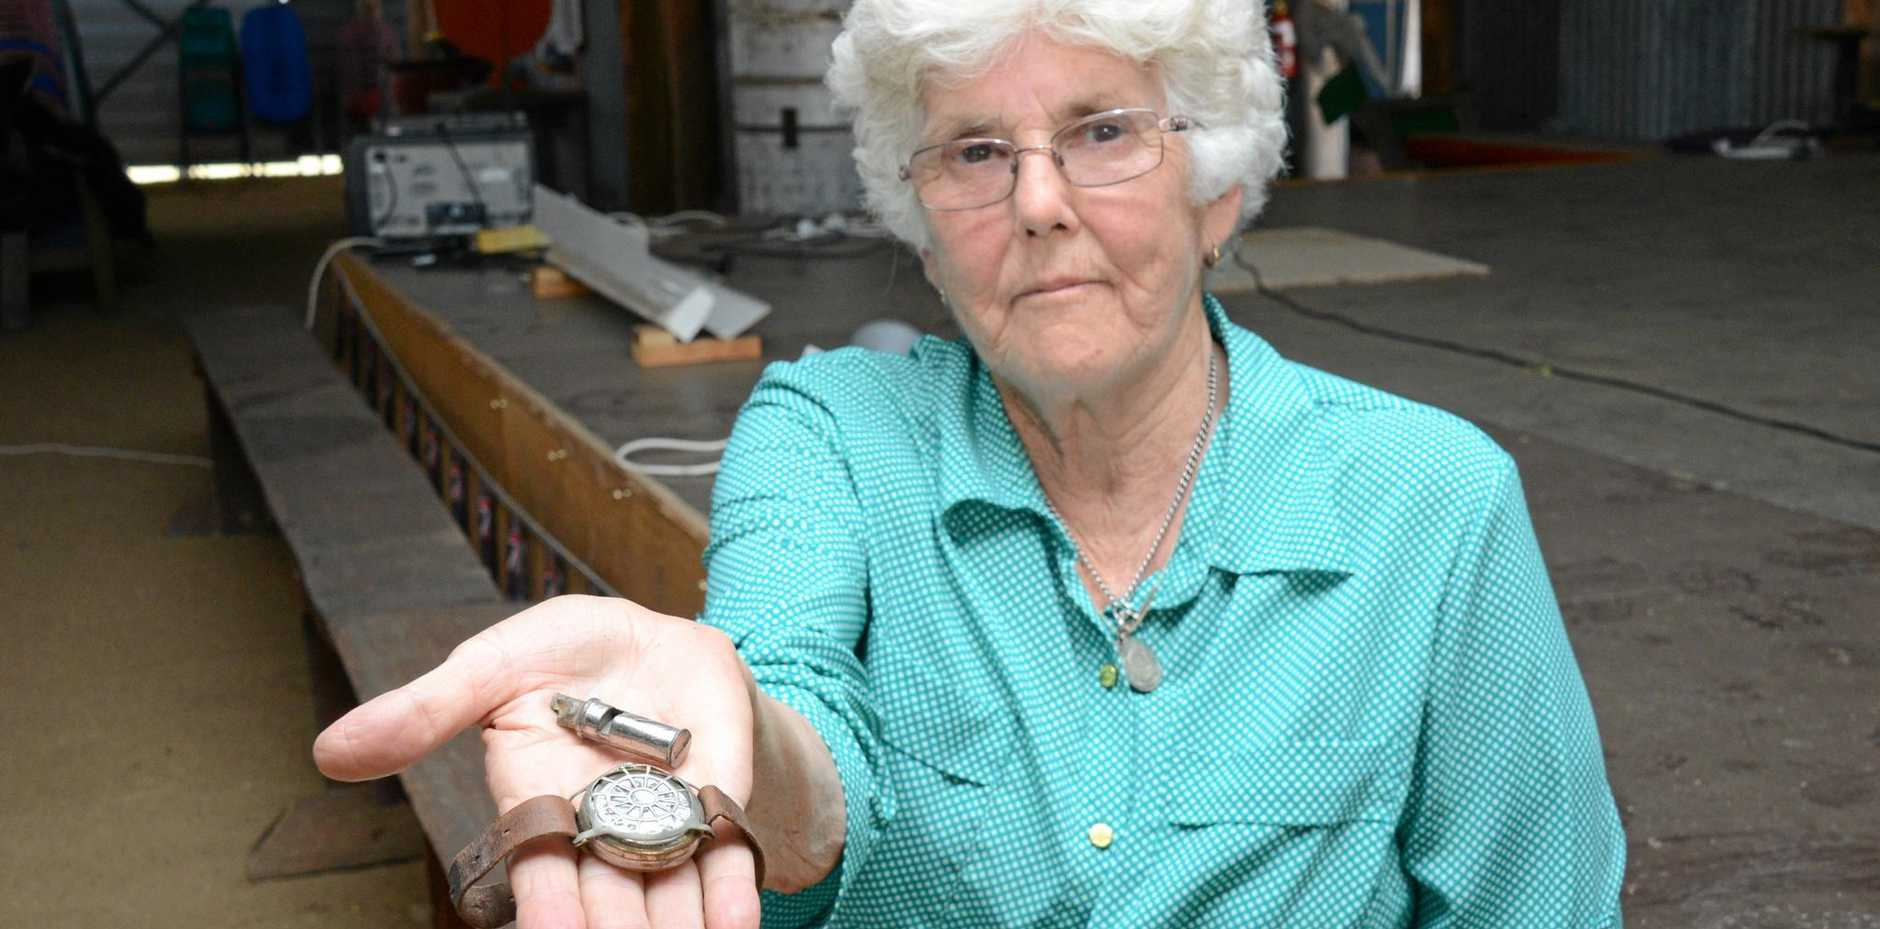 PRIZED POSSESSIONS: Barbara Brazier holding the watch and whistle that belonged to the late Arthur Brazier.